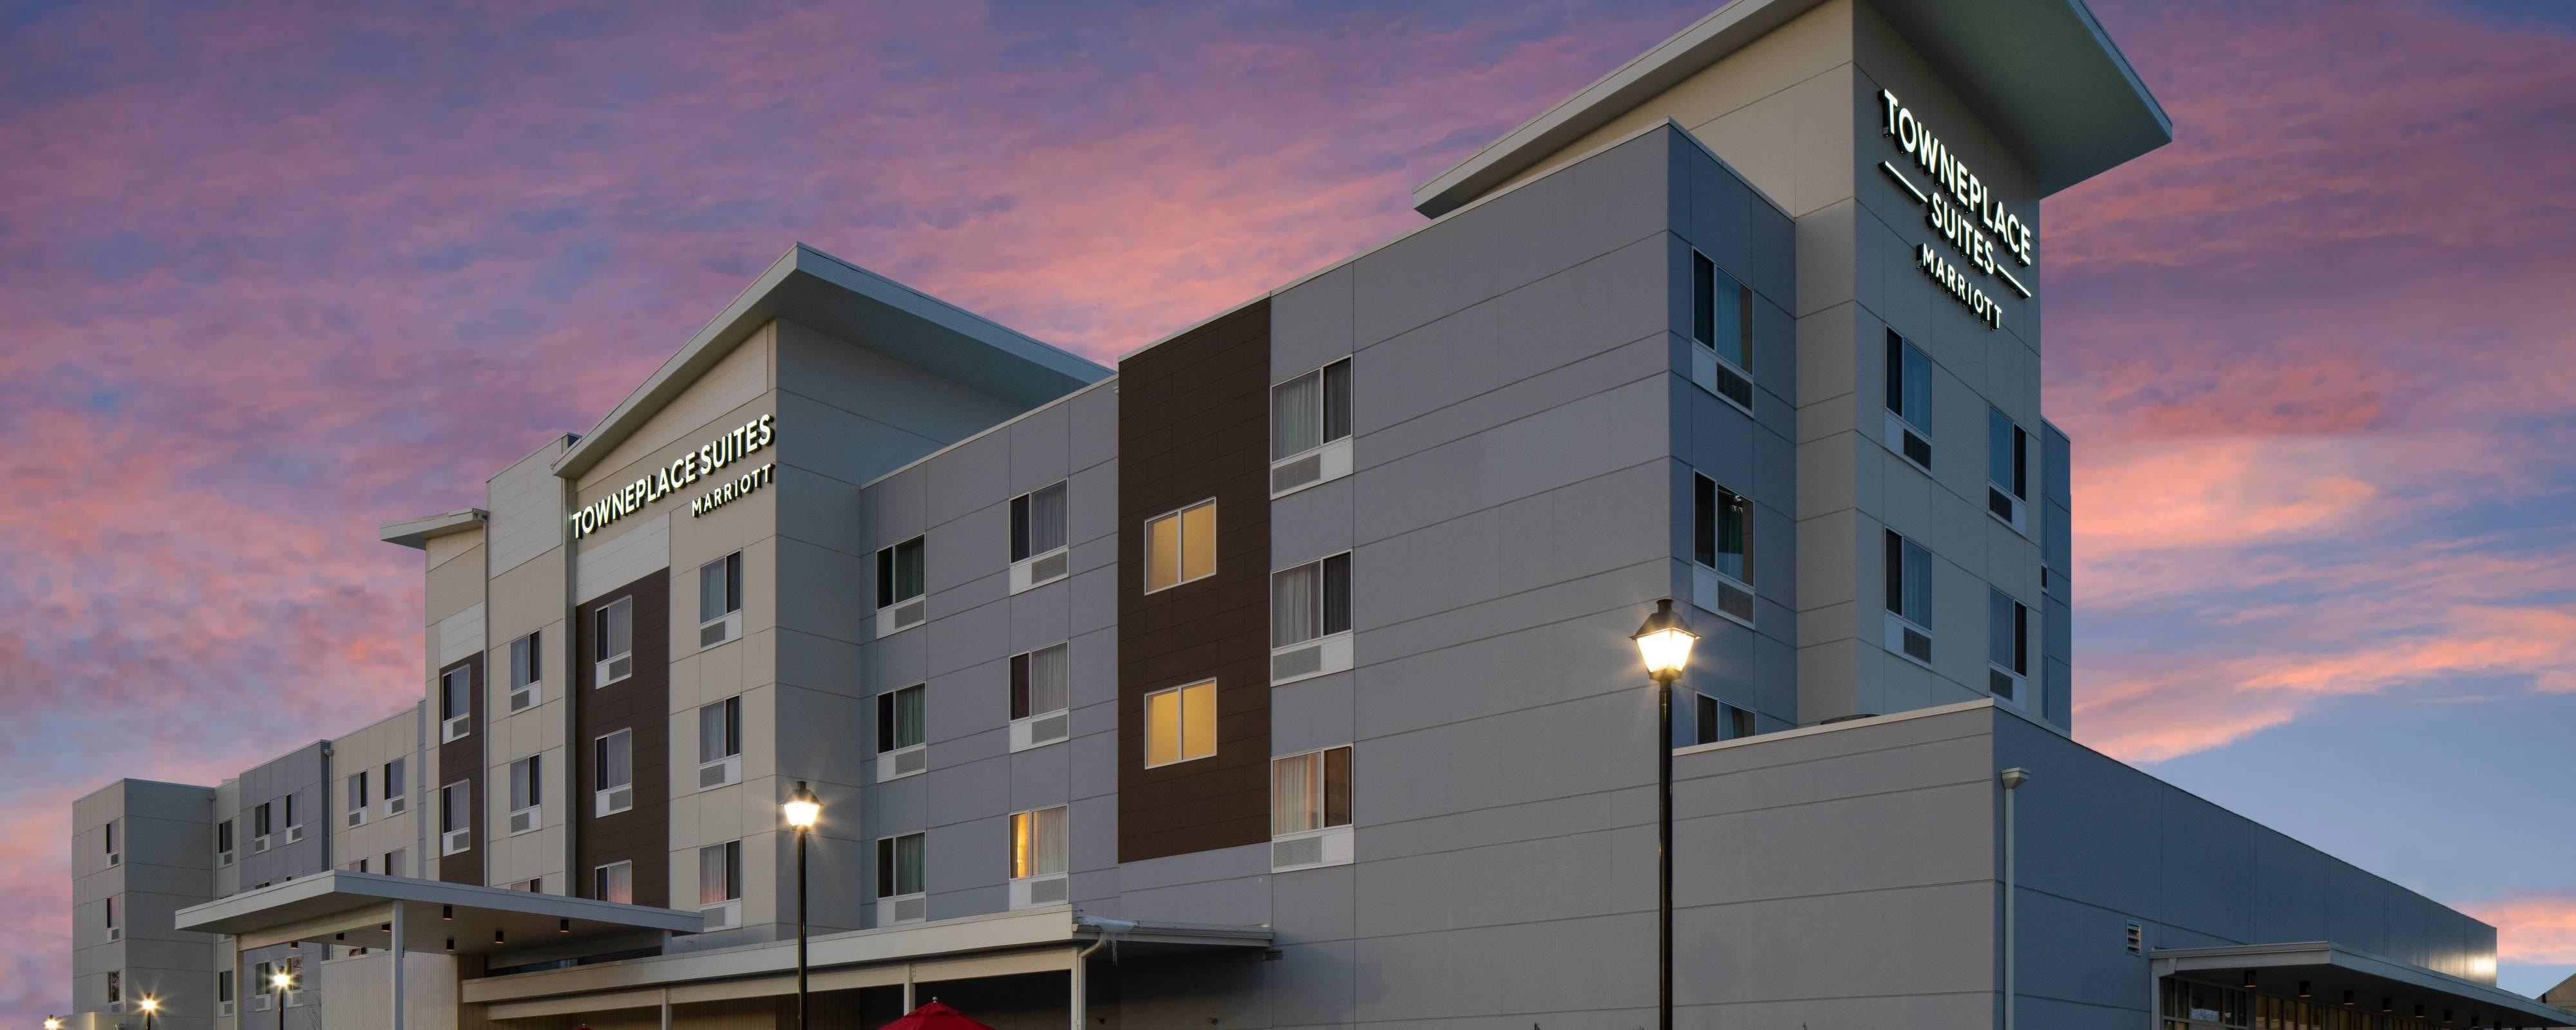 extended stay hotels in clarkesville tn towneplace suites clarksville rh marriott com